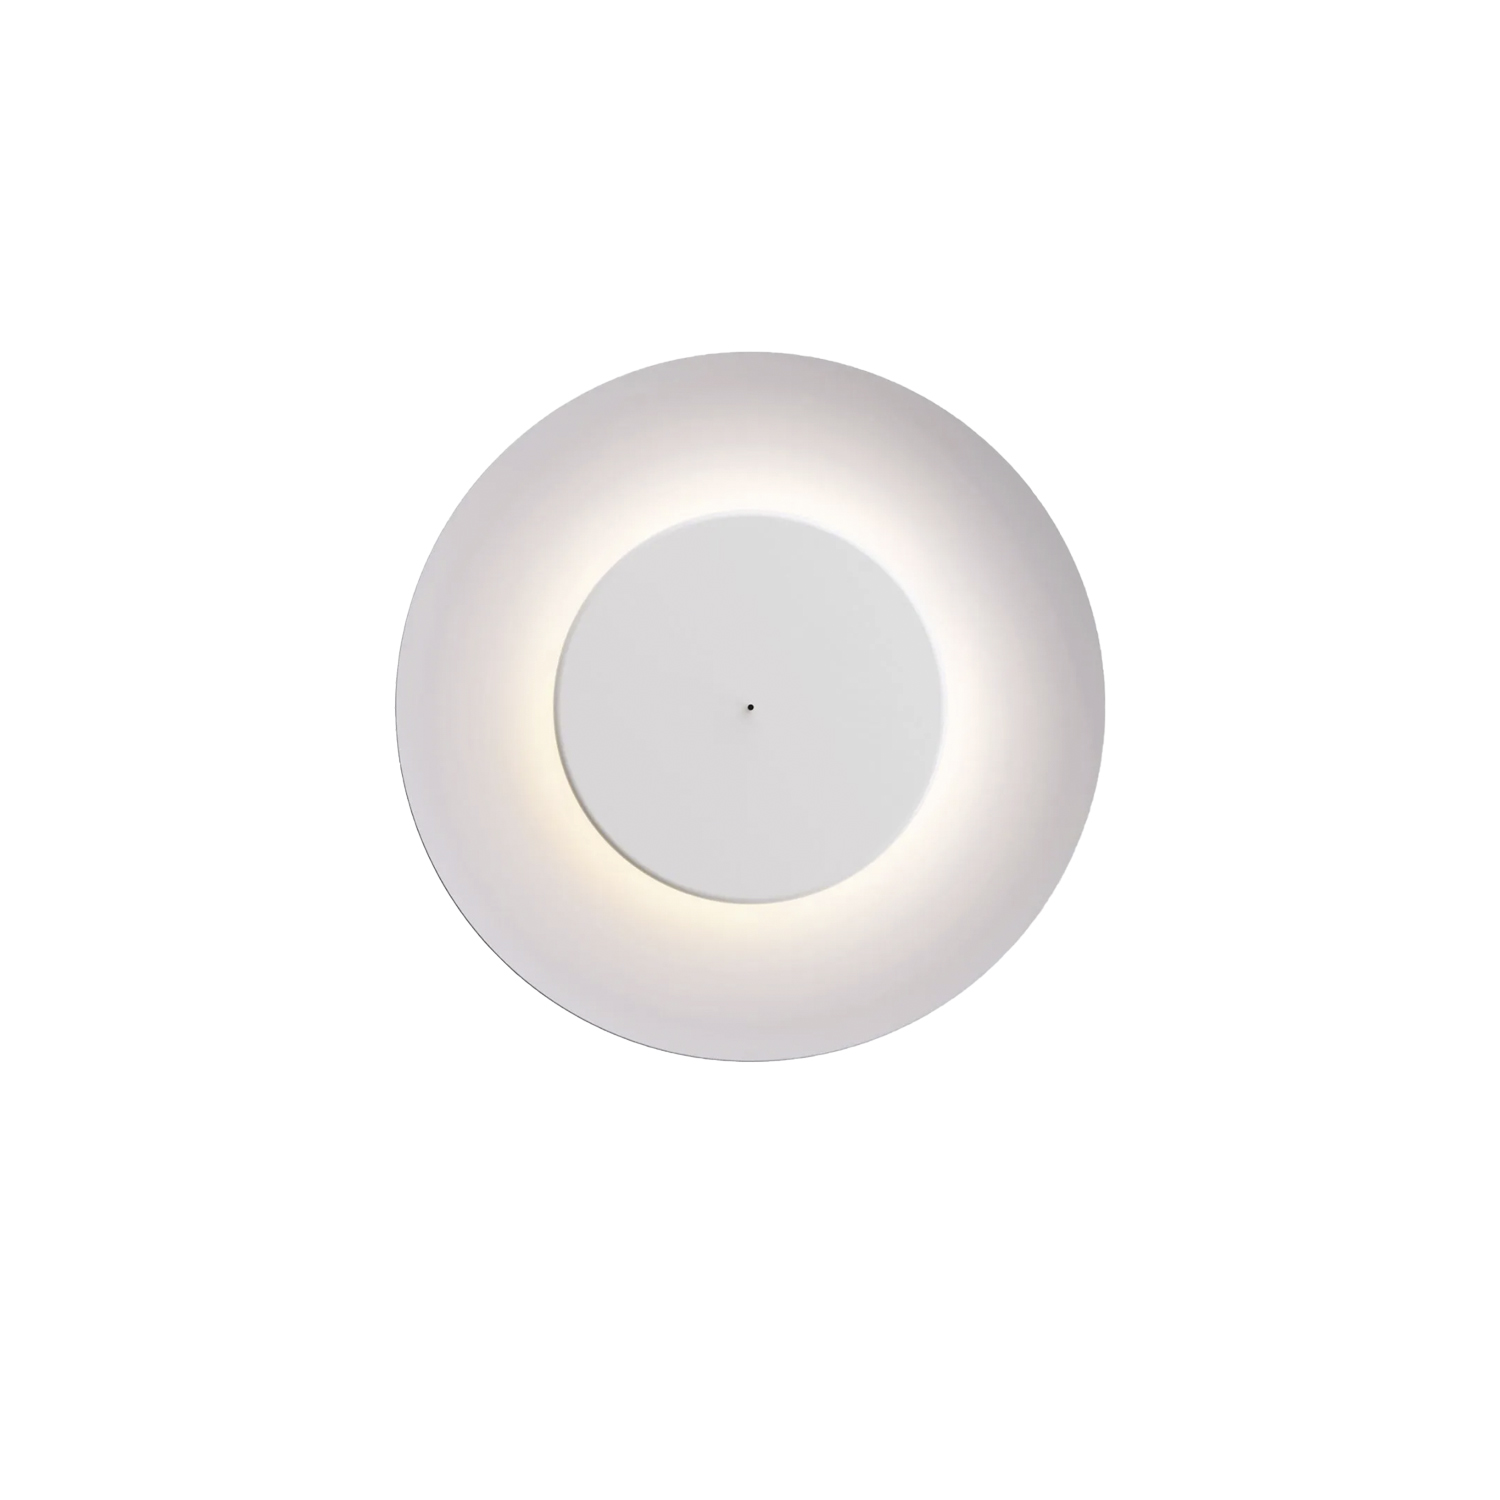 Lunaire Wall/ Ceiling Lamp - Lunaire is a wall and ceiling lamp with a surprising light effect, reminiscent of the phenomenon produced by eclipses. A smaller front disc containingthe light source is set inside a large concave aluminium diffuser.Two different effects are possible depending on how the small discis positioned with respect to the diffuser: back lighting when the front disc is closed, in other words pushed towards the wall, or from insidethe diffuser when the disc is pulled forward. Simply pulling or pushing the rod on the front of the disc immediately changes the lightingeffect to suit the mood. Thanks to the large diameter of the diffuser, Lunaire is the perfect lighting solution for big area, they residential or contract.  Wall/ceiling lamp with adjustable light by means of the closing cap placed on the reflector. Polyethylene rear body. Reflector and cap made of painted metal. Integrated led.   | Matter of Stuff